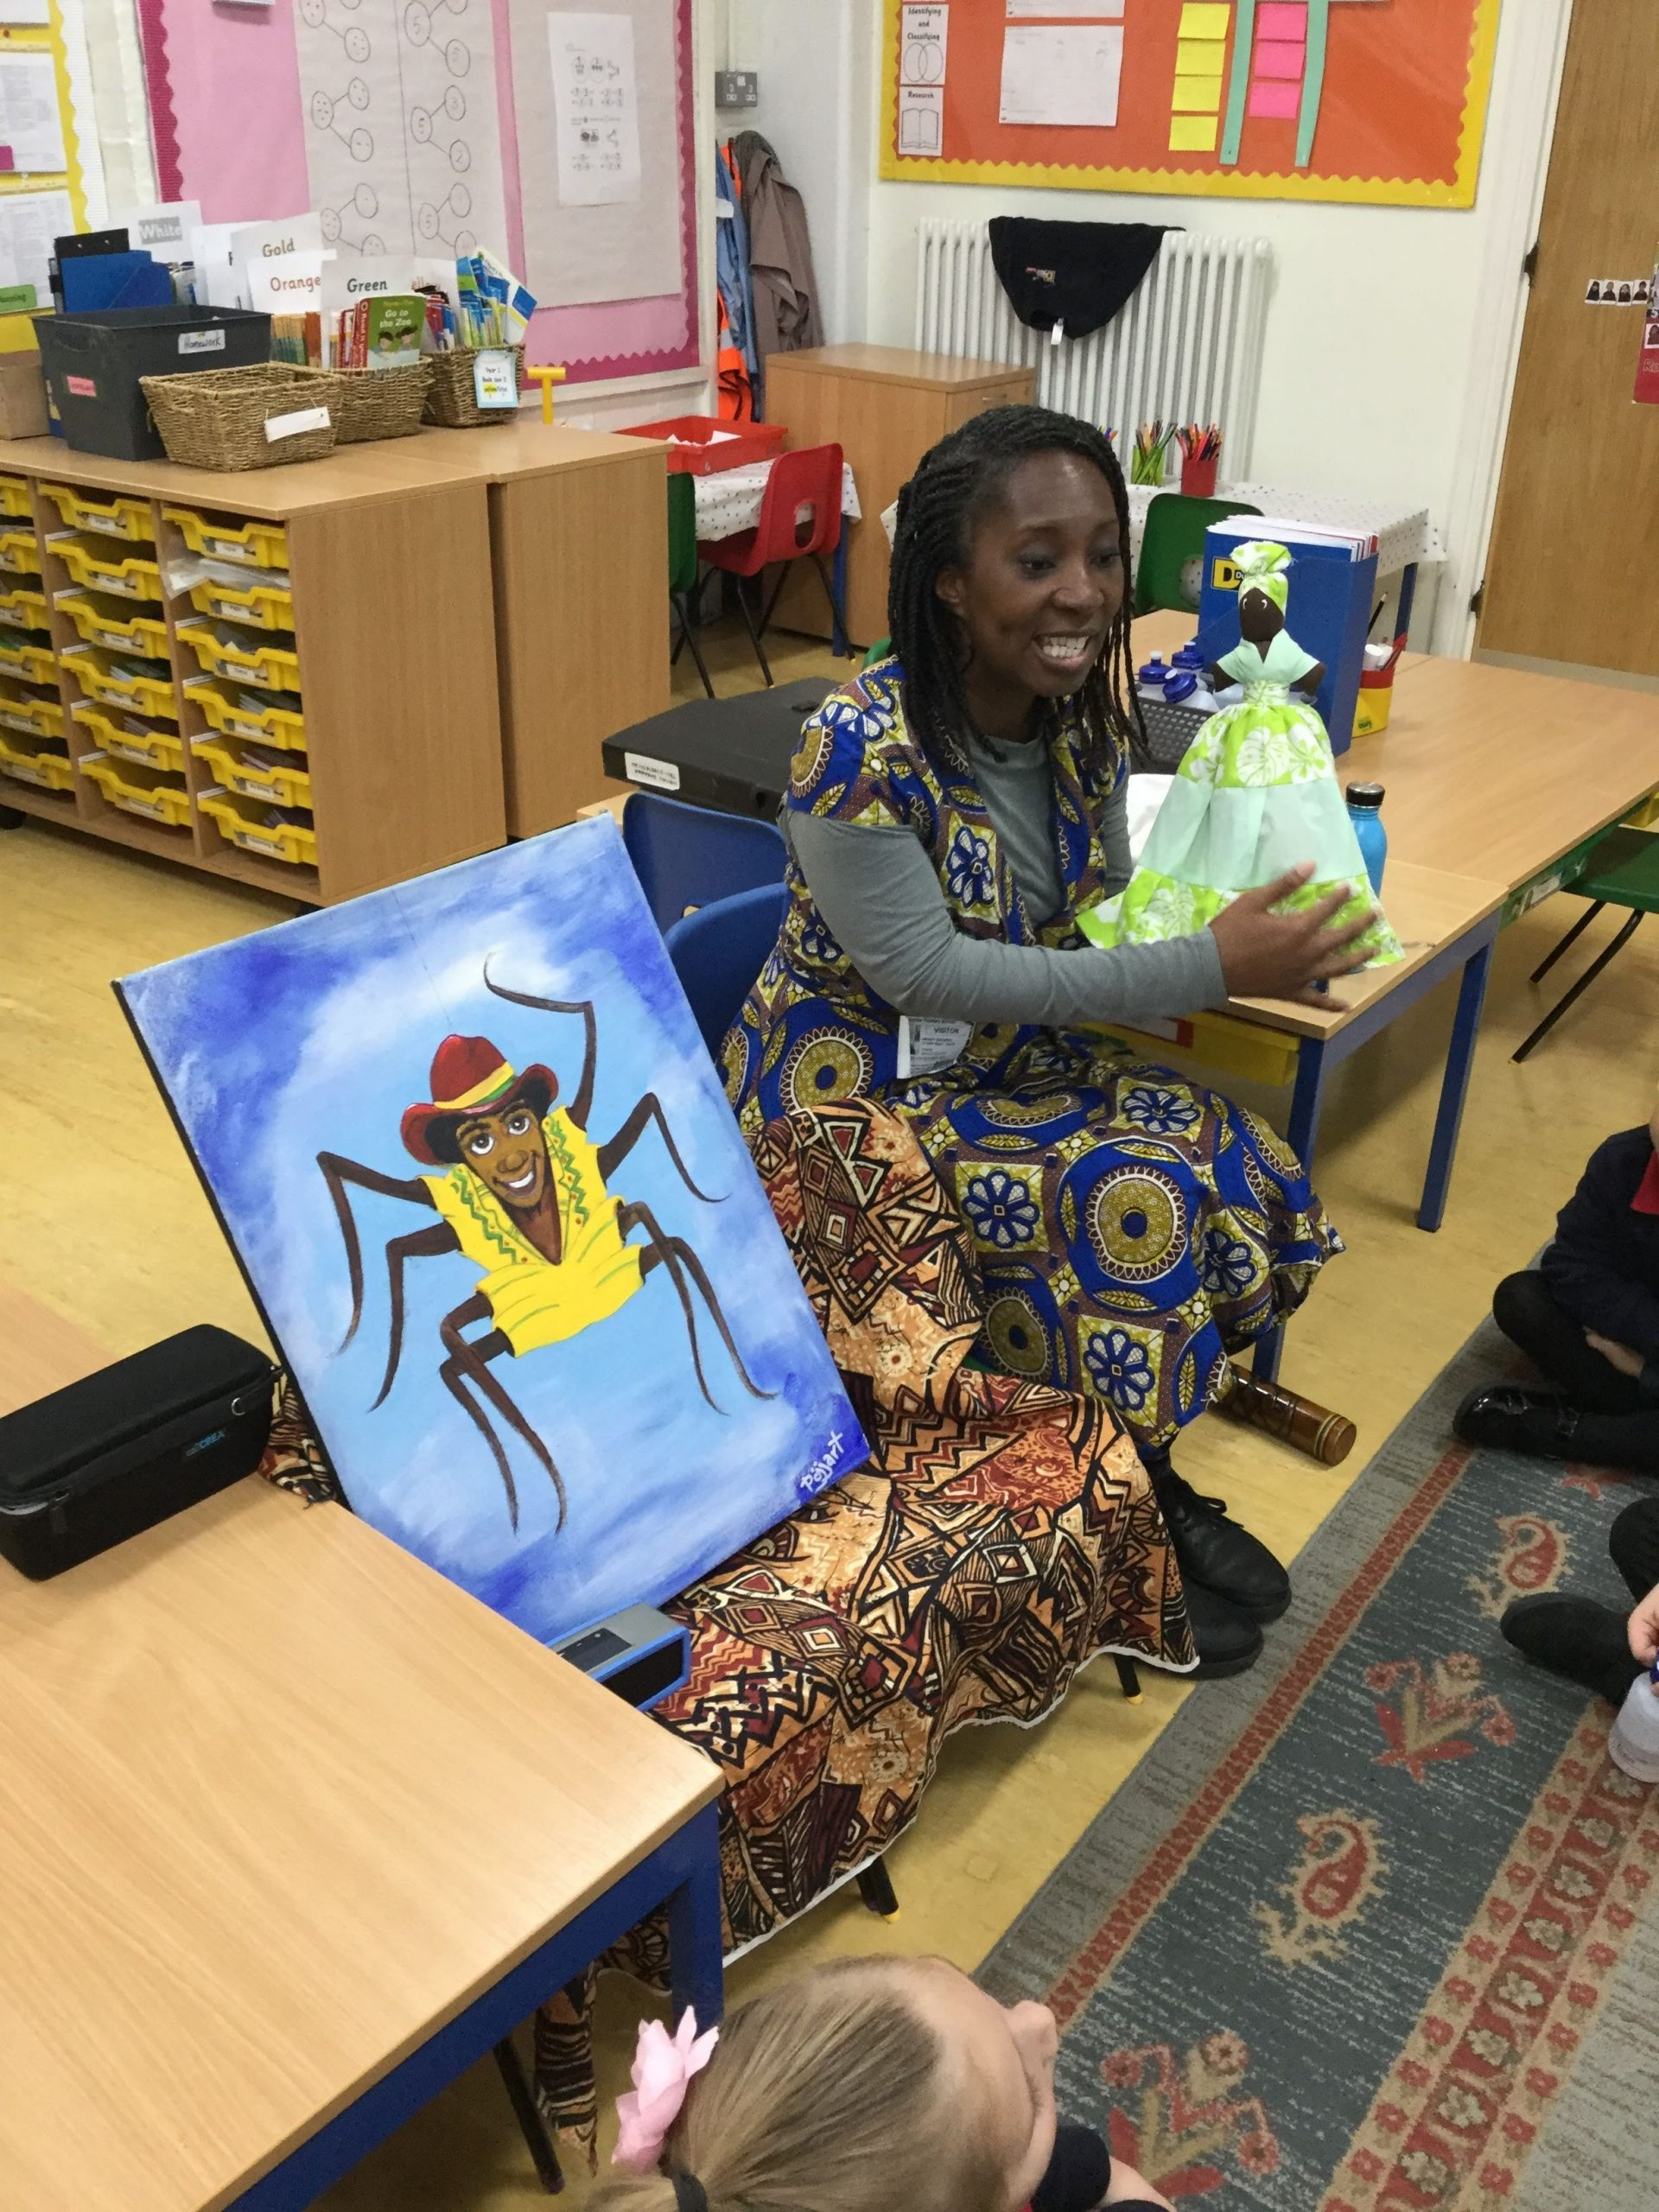 Wendy Shearer Storytelling with puppets at Duncombe Primary School